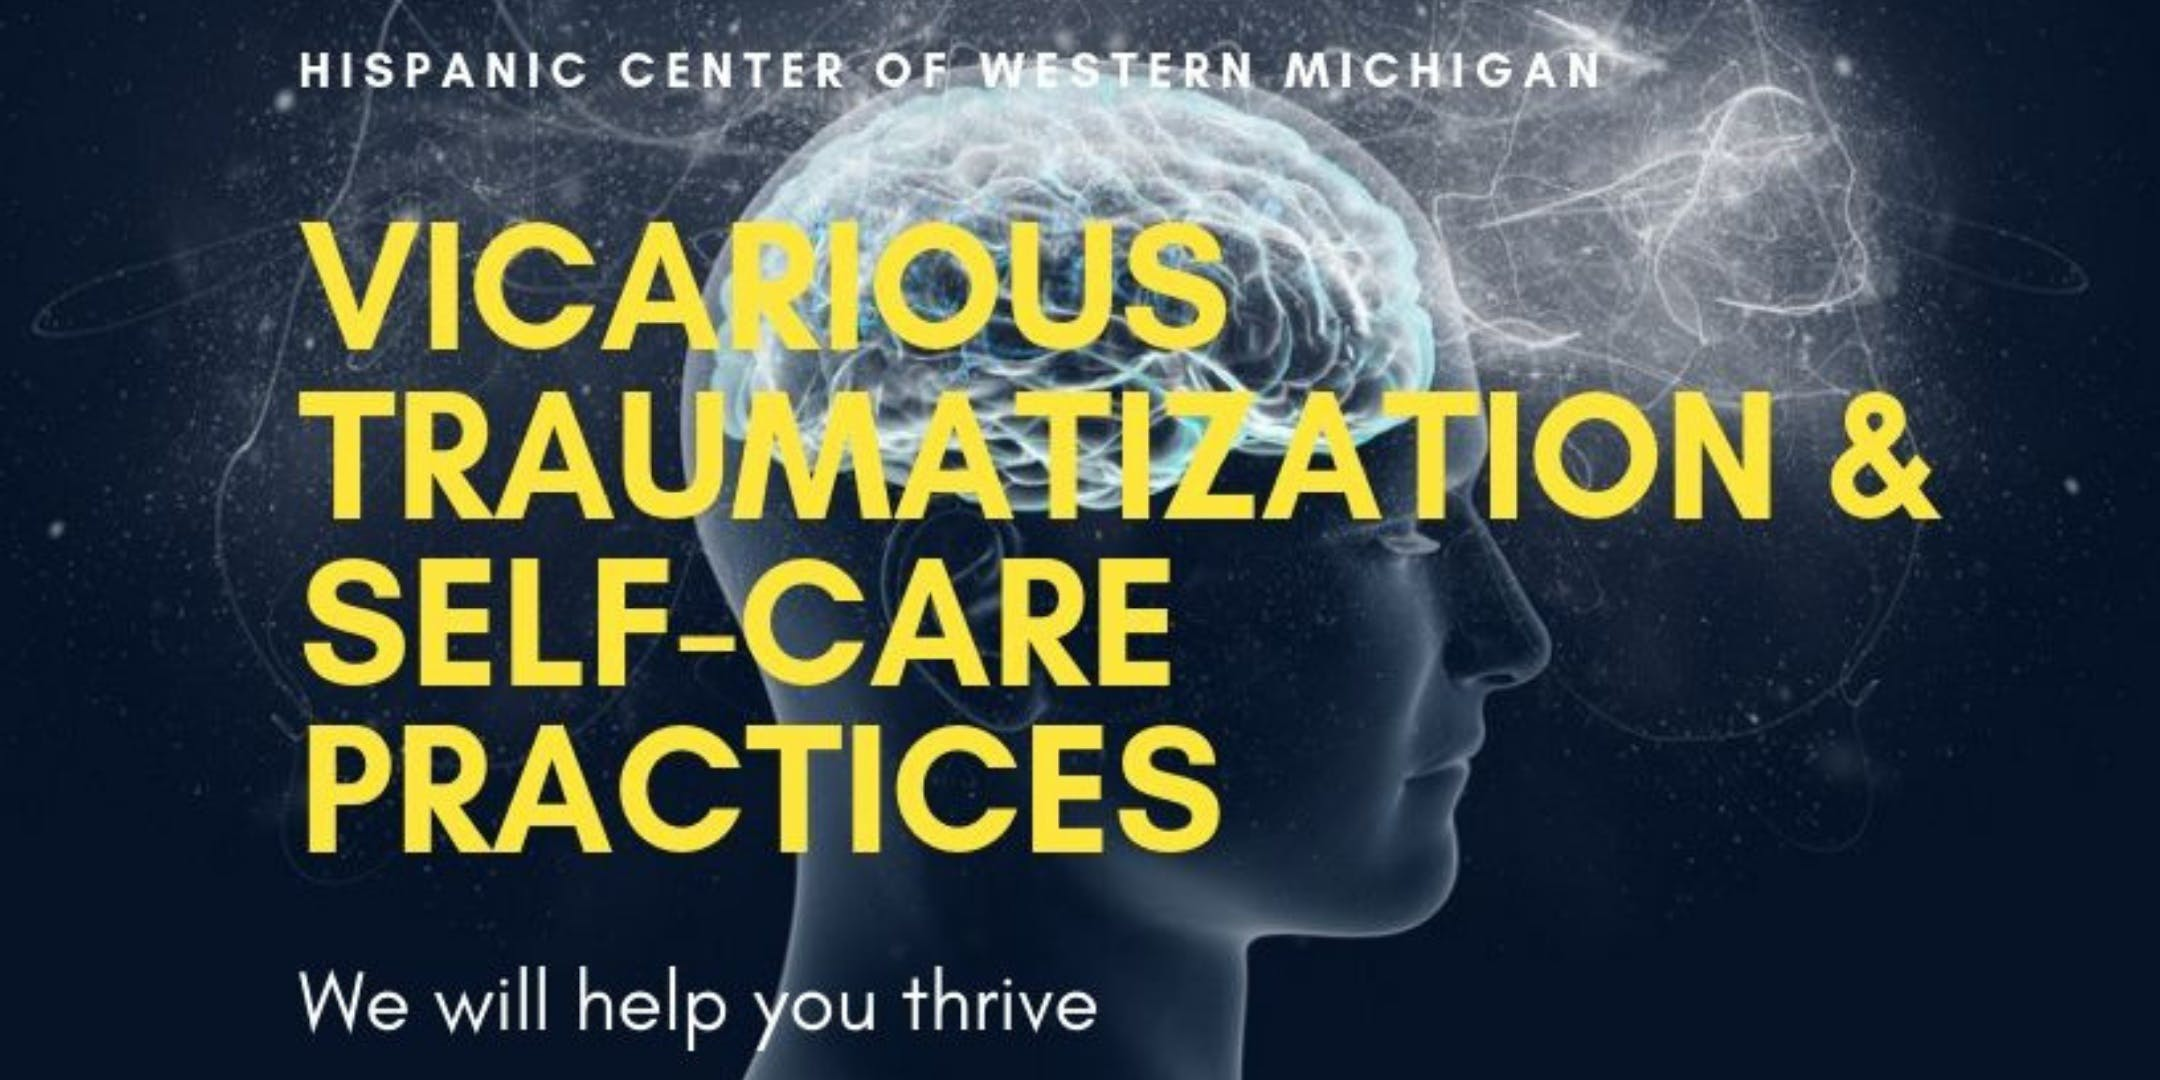 Vicarious Traumatization & Self-Care Practices offered by the Hispanic Center of Western Michigan